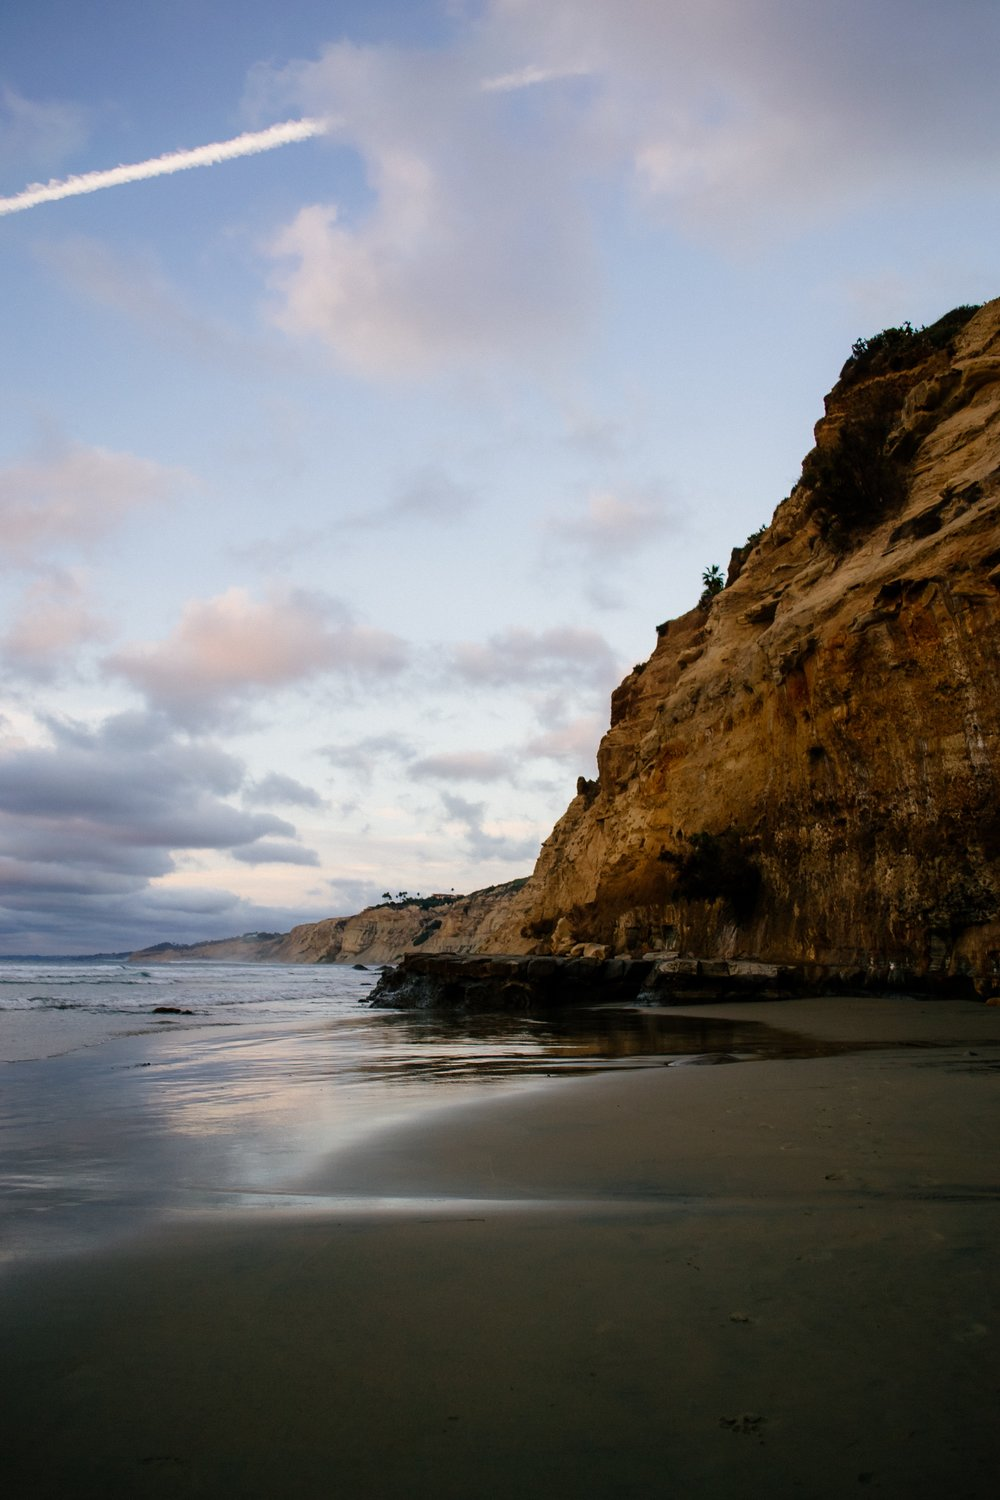 Matt-Sampson-Photography-San-Diego-California-La-Jolla-Beach-Twilight-Cliffs.jpg